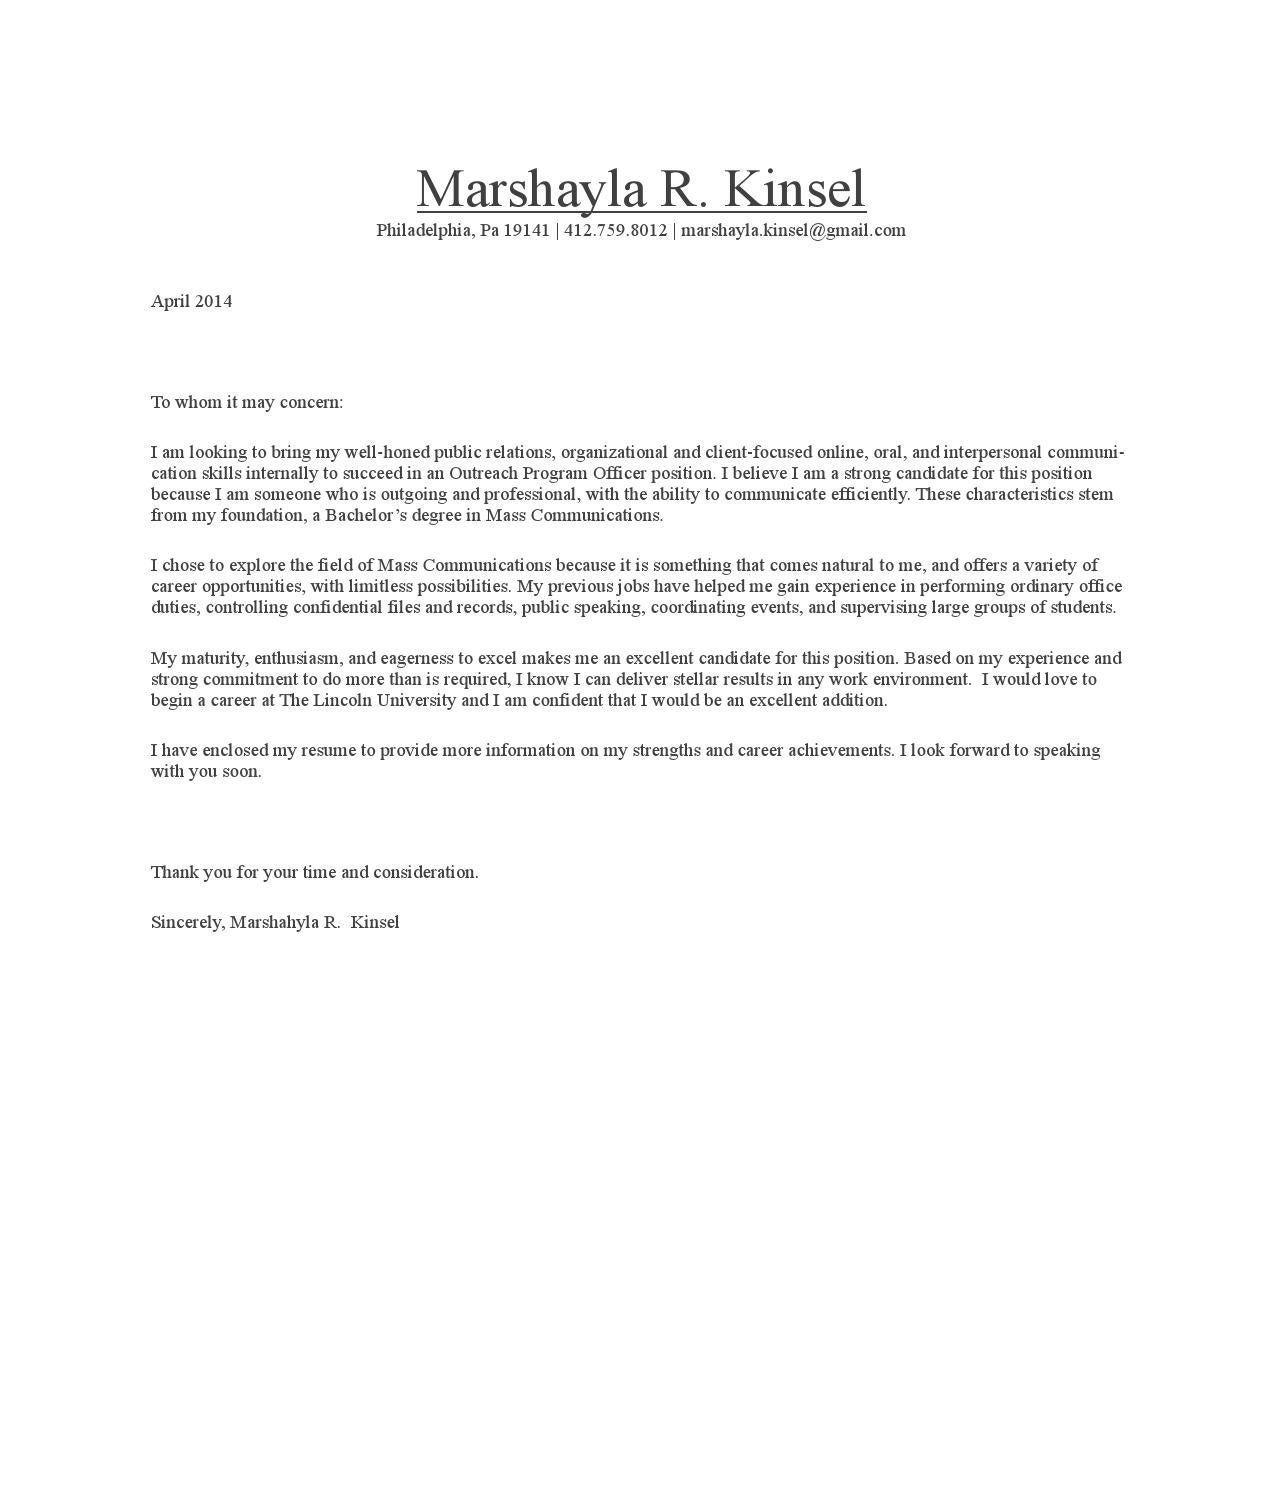 Attached Please Find My Resume Samples Of Resumes Hi Please Find Attached My  Resume  Find My Resume